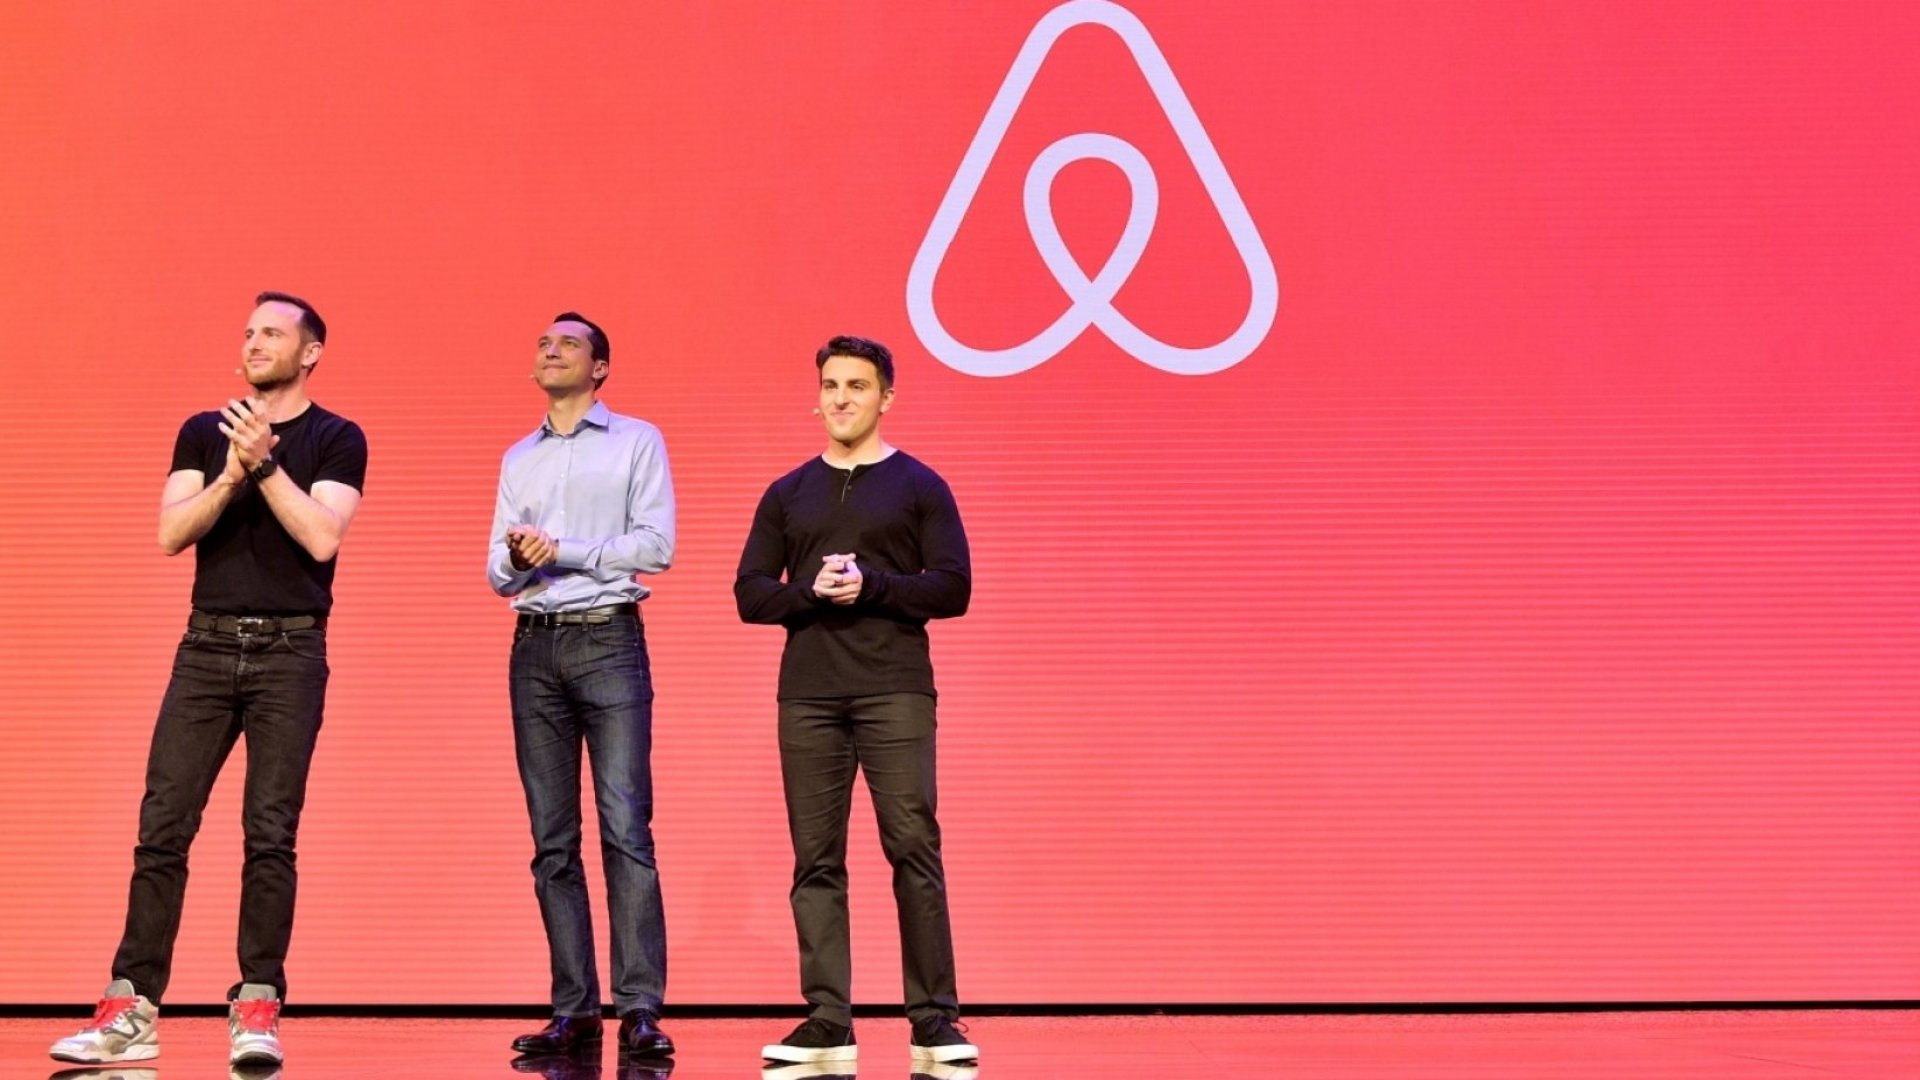 Airbnb Makes a Big Play for Business Travelers, and It's Not Alone